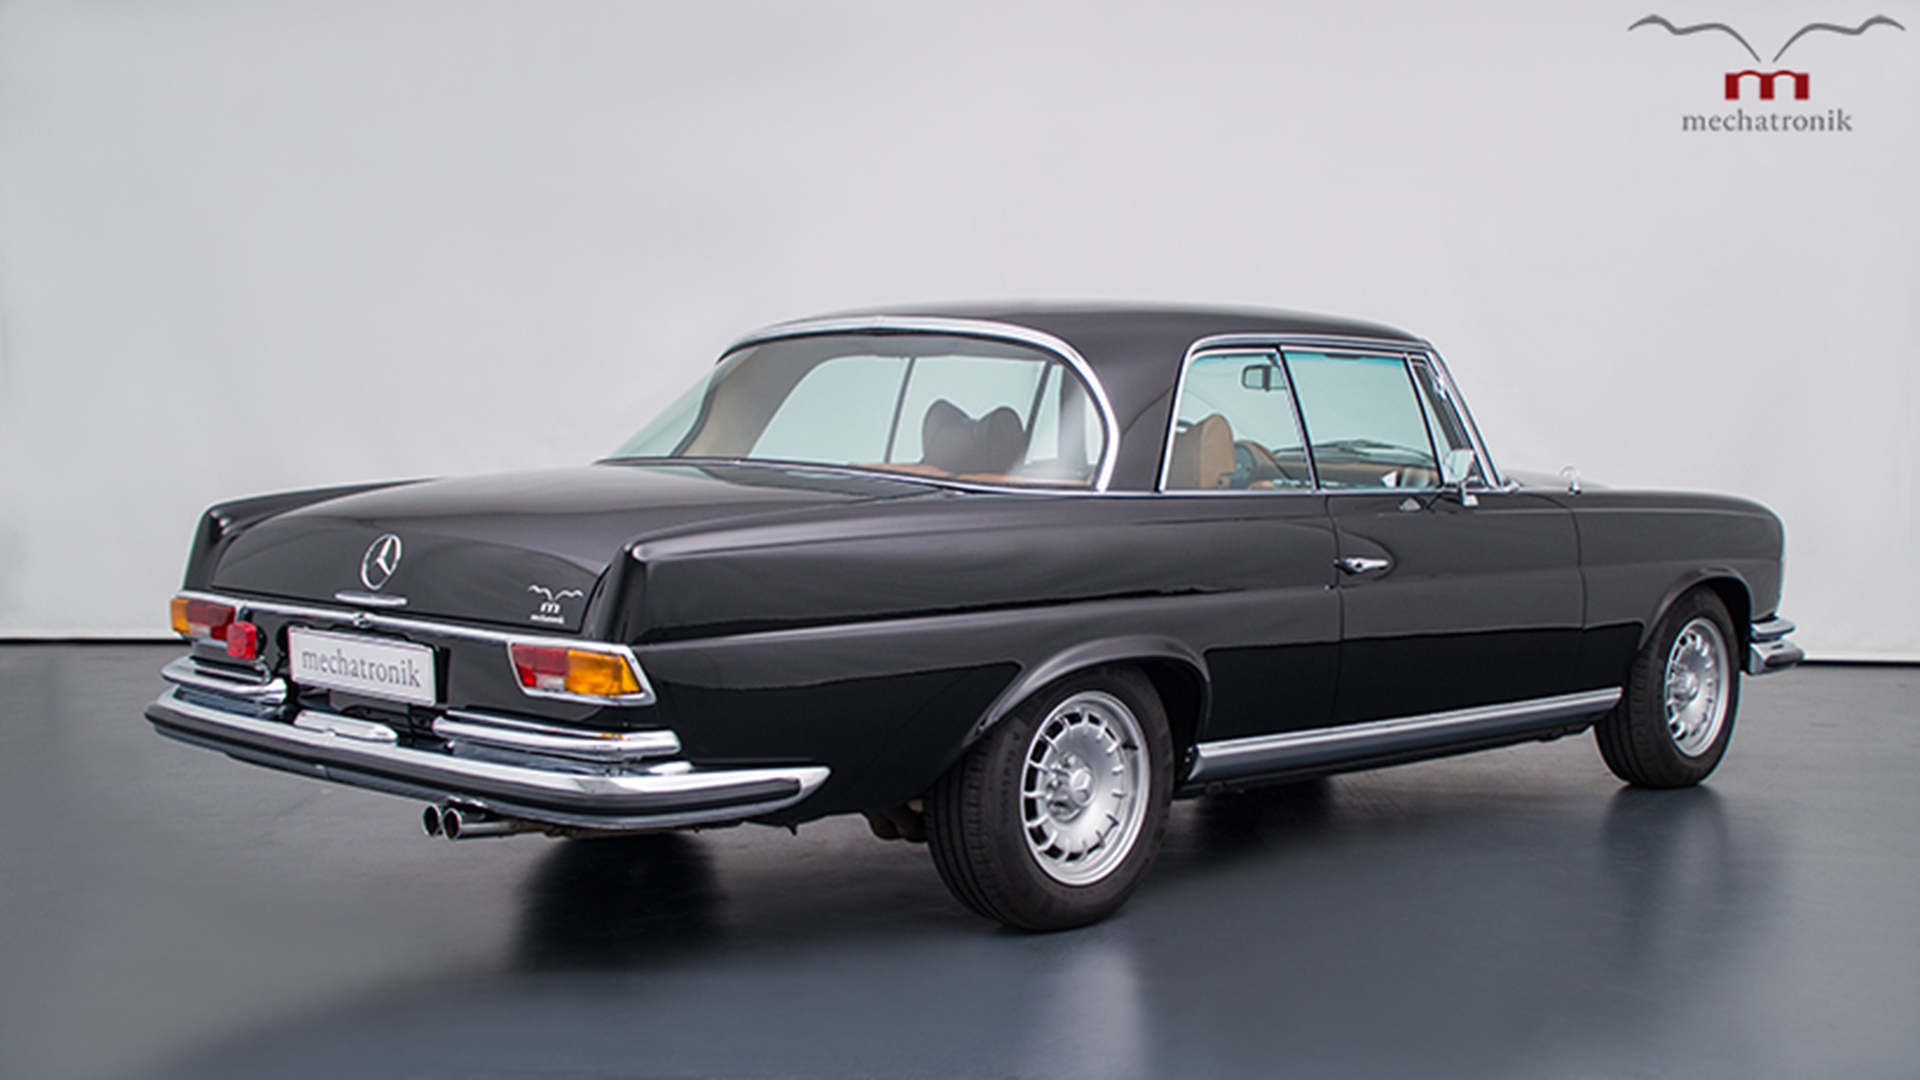 This 1970 Mercedes W111 Is a Gorgeous Sleeper Restomod Rocking an